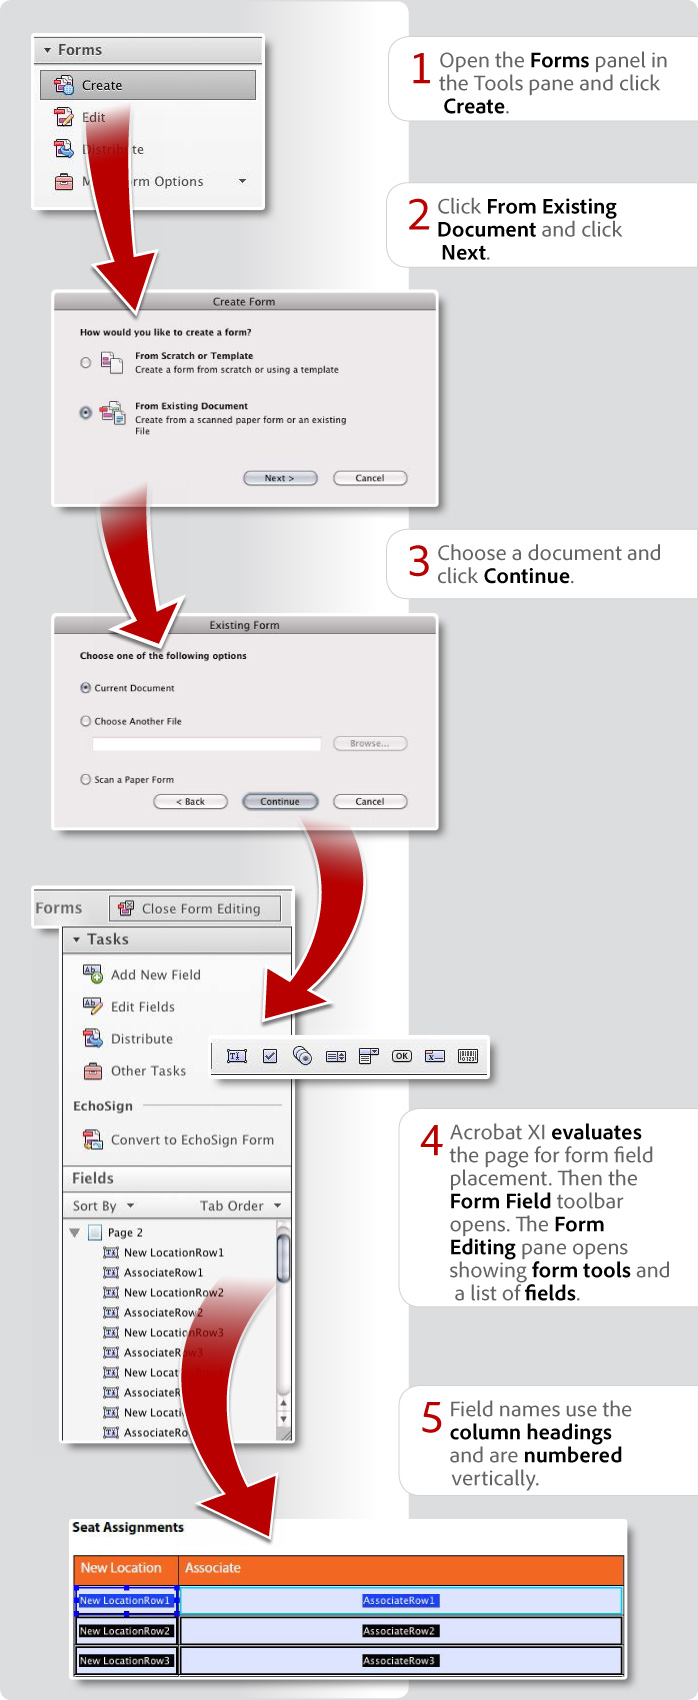 How to create a form from an existing document using Acrobat XI